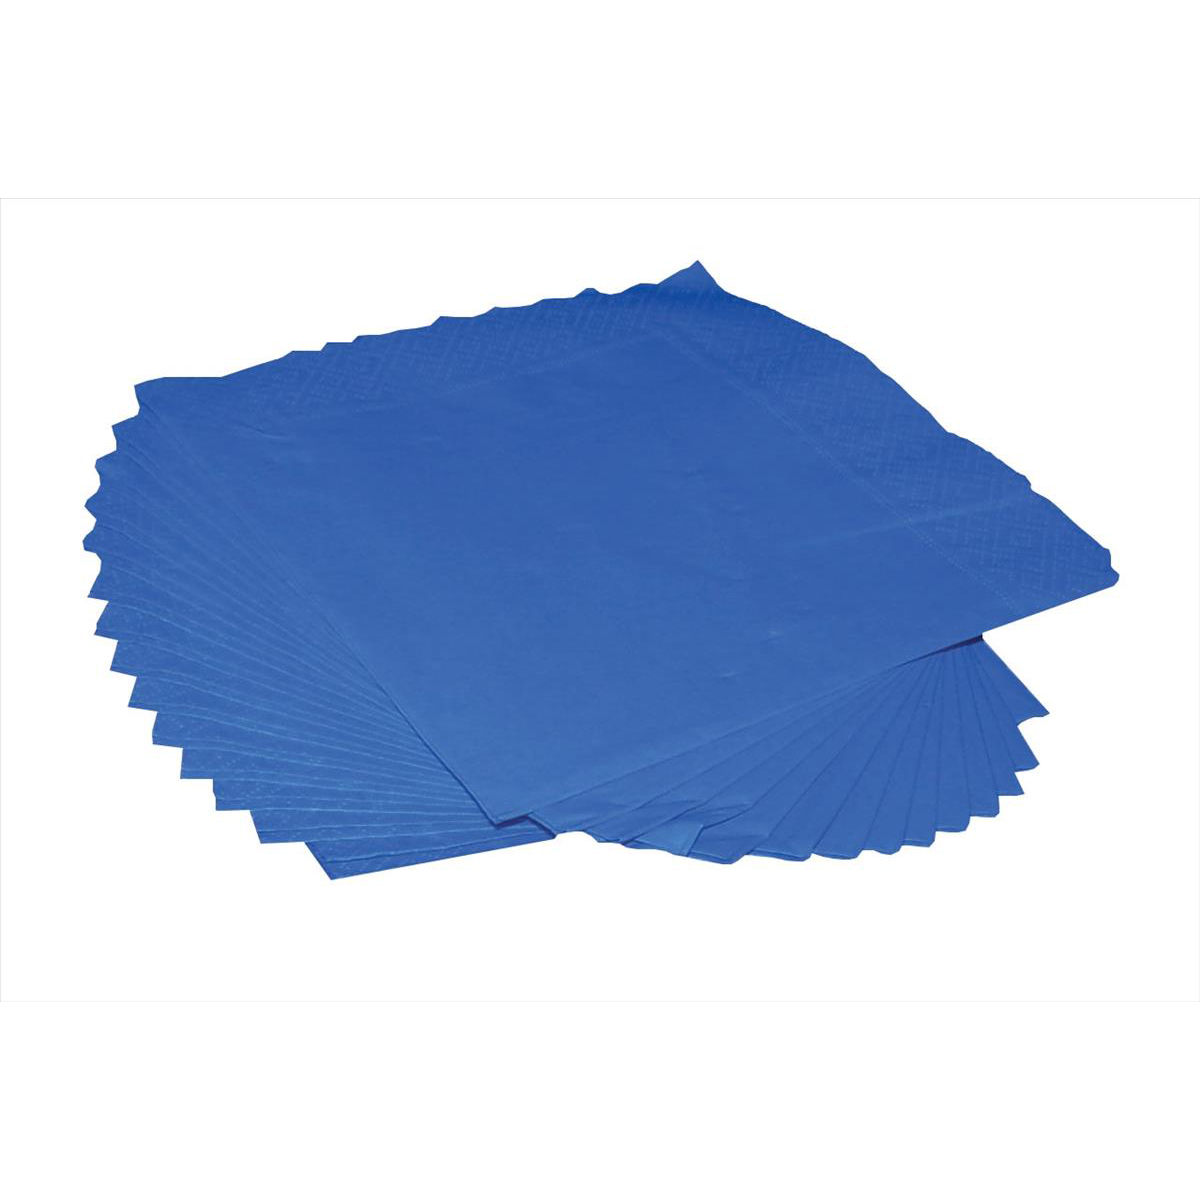 Serviettes / Napkins Napkin 2-Ply 400x400mm Royal Blue Pack 125